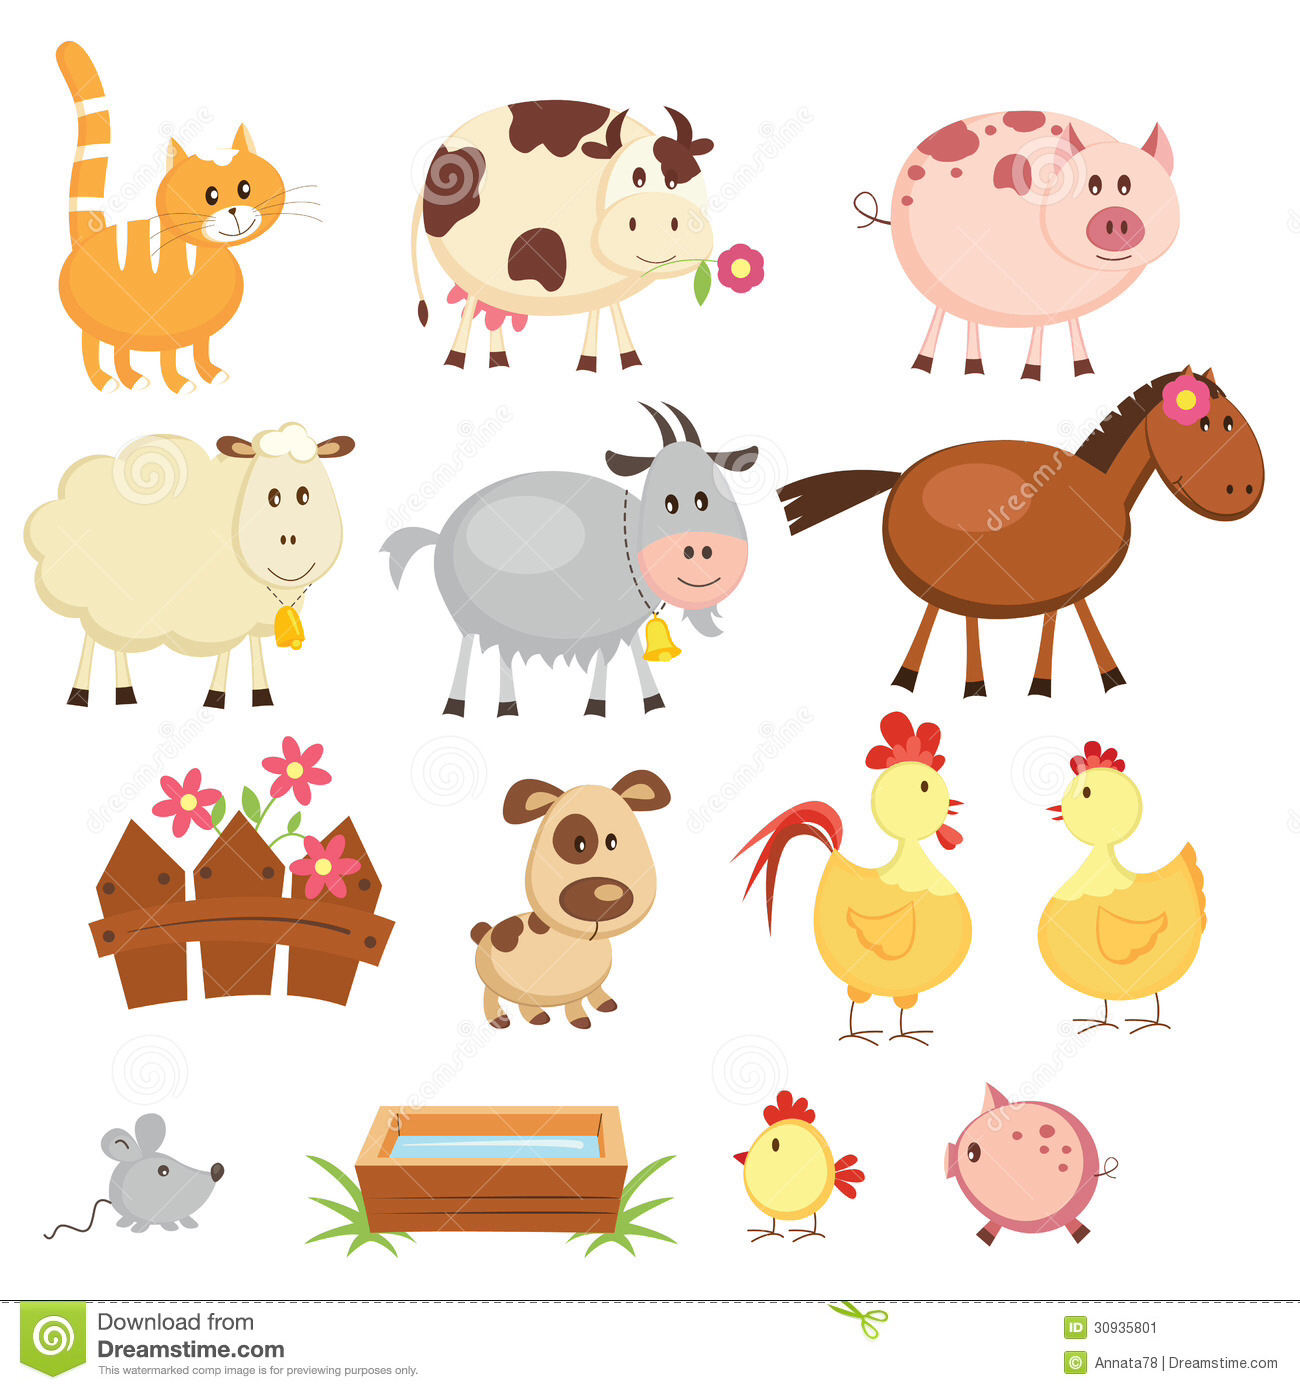 Farm Animals clipart #1, Download drawings